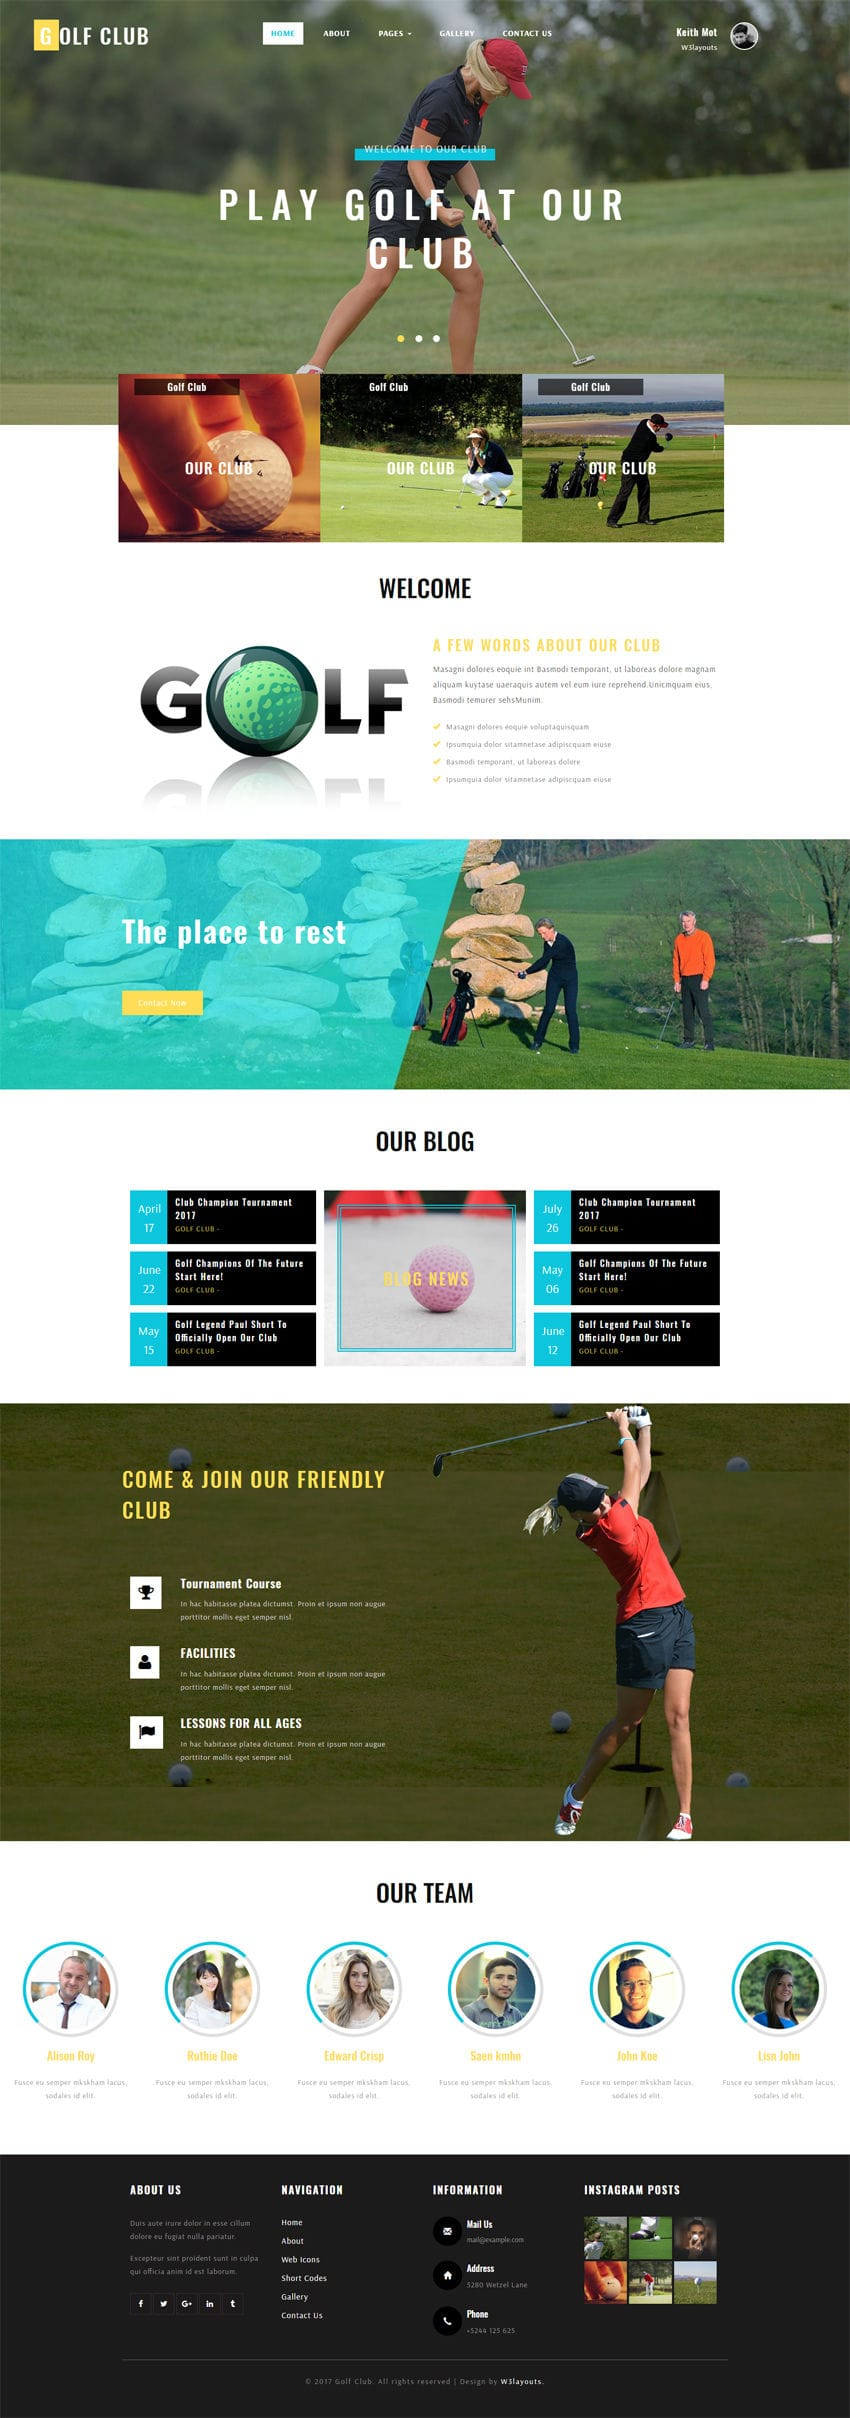 golf club a sports category bootstrap responsive web template. Black Bedroom Furniture Sets. Home Design Ideas